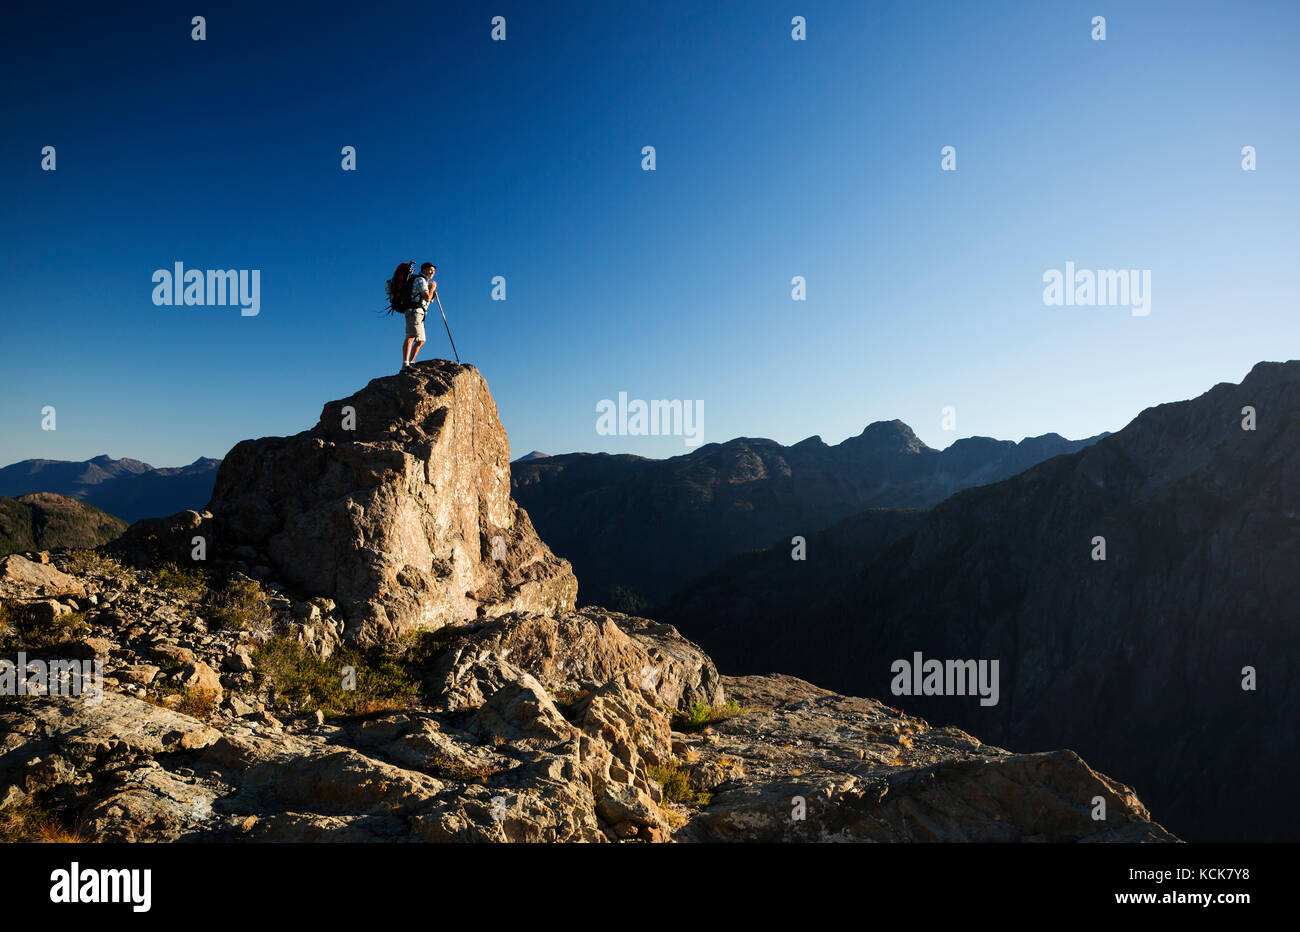 A lone hiker on the Flower Ridge trail overlooks the Henshaw/Shepherd Creek watershed in Strathcona Park, Central - Stock Image